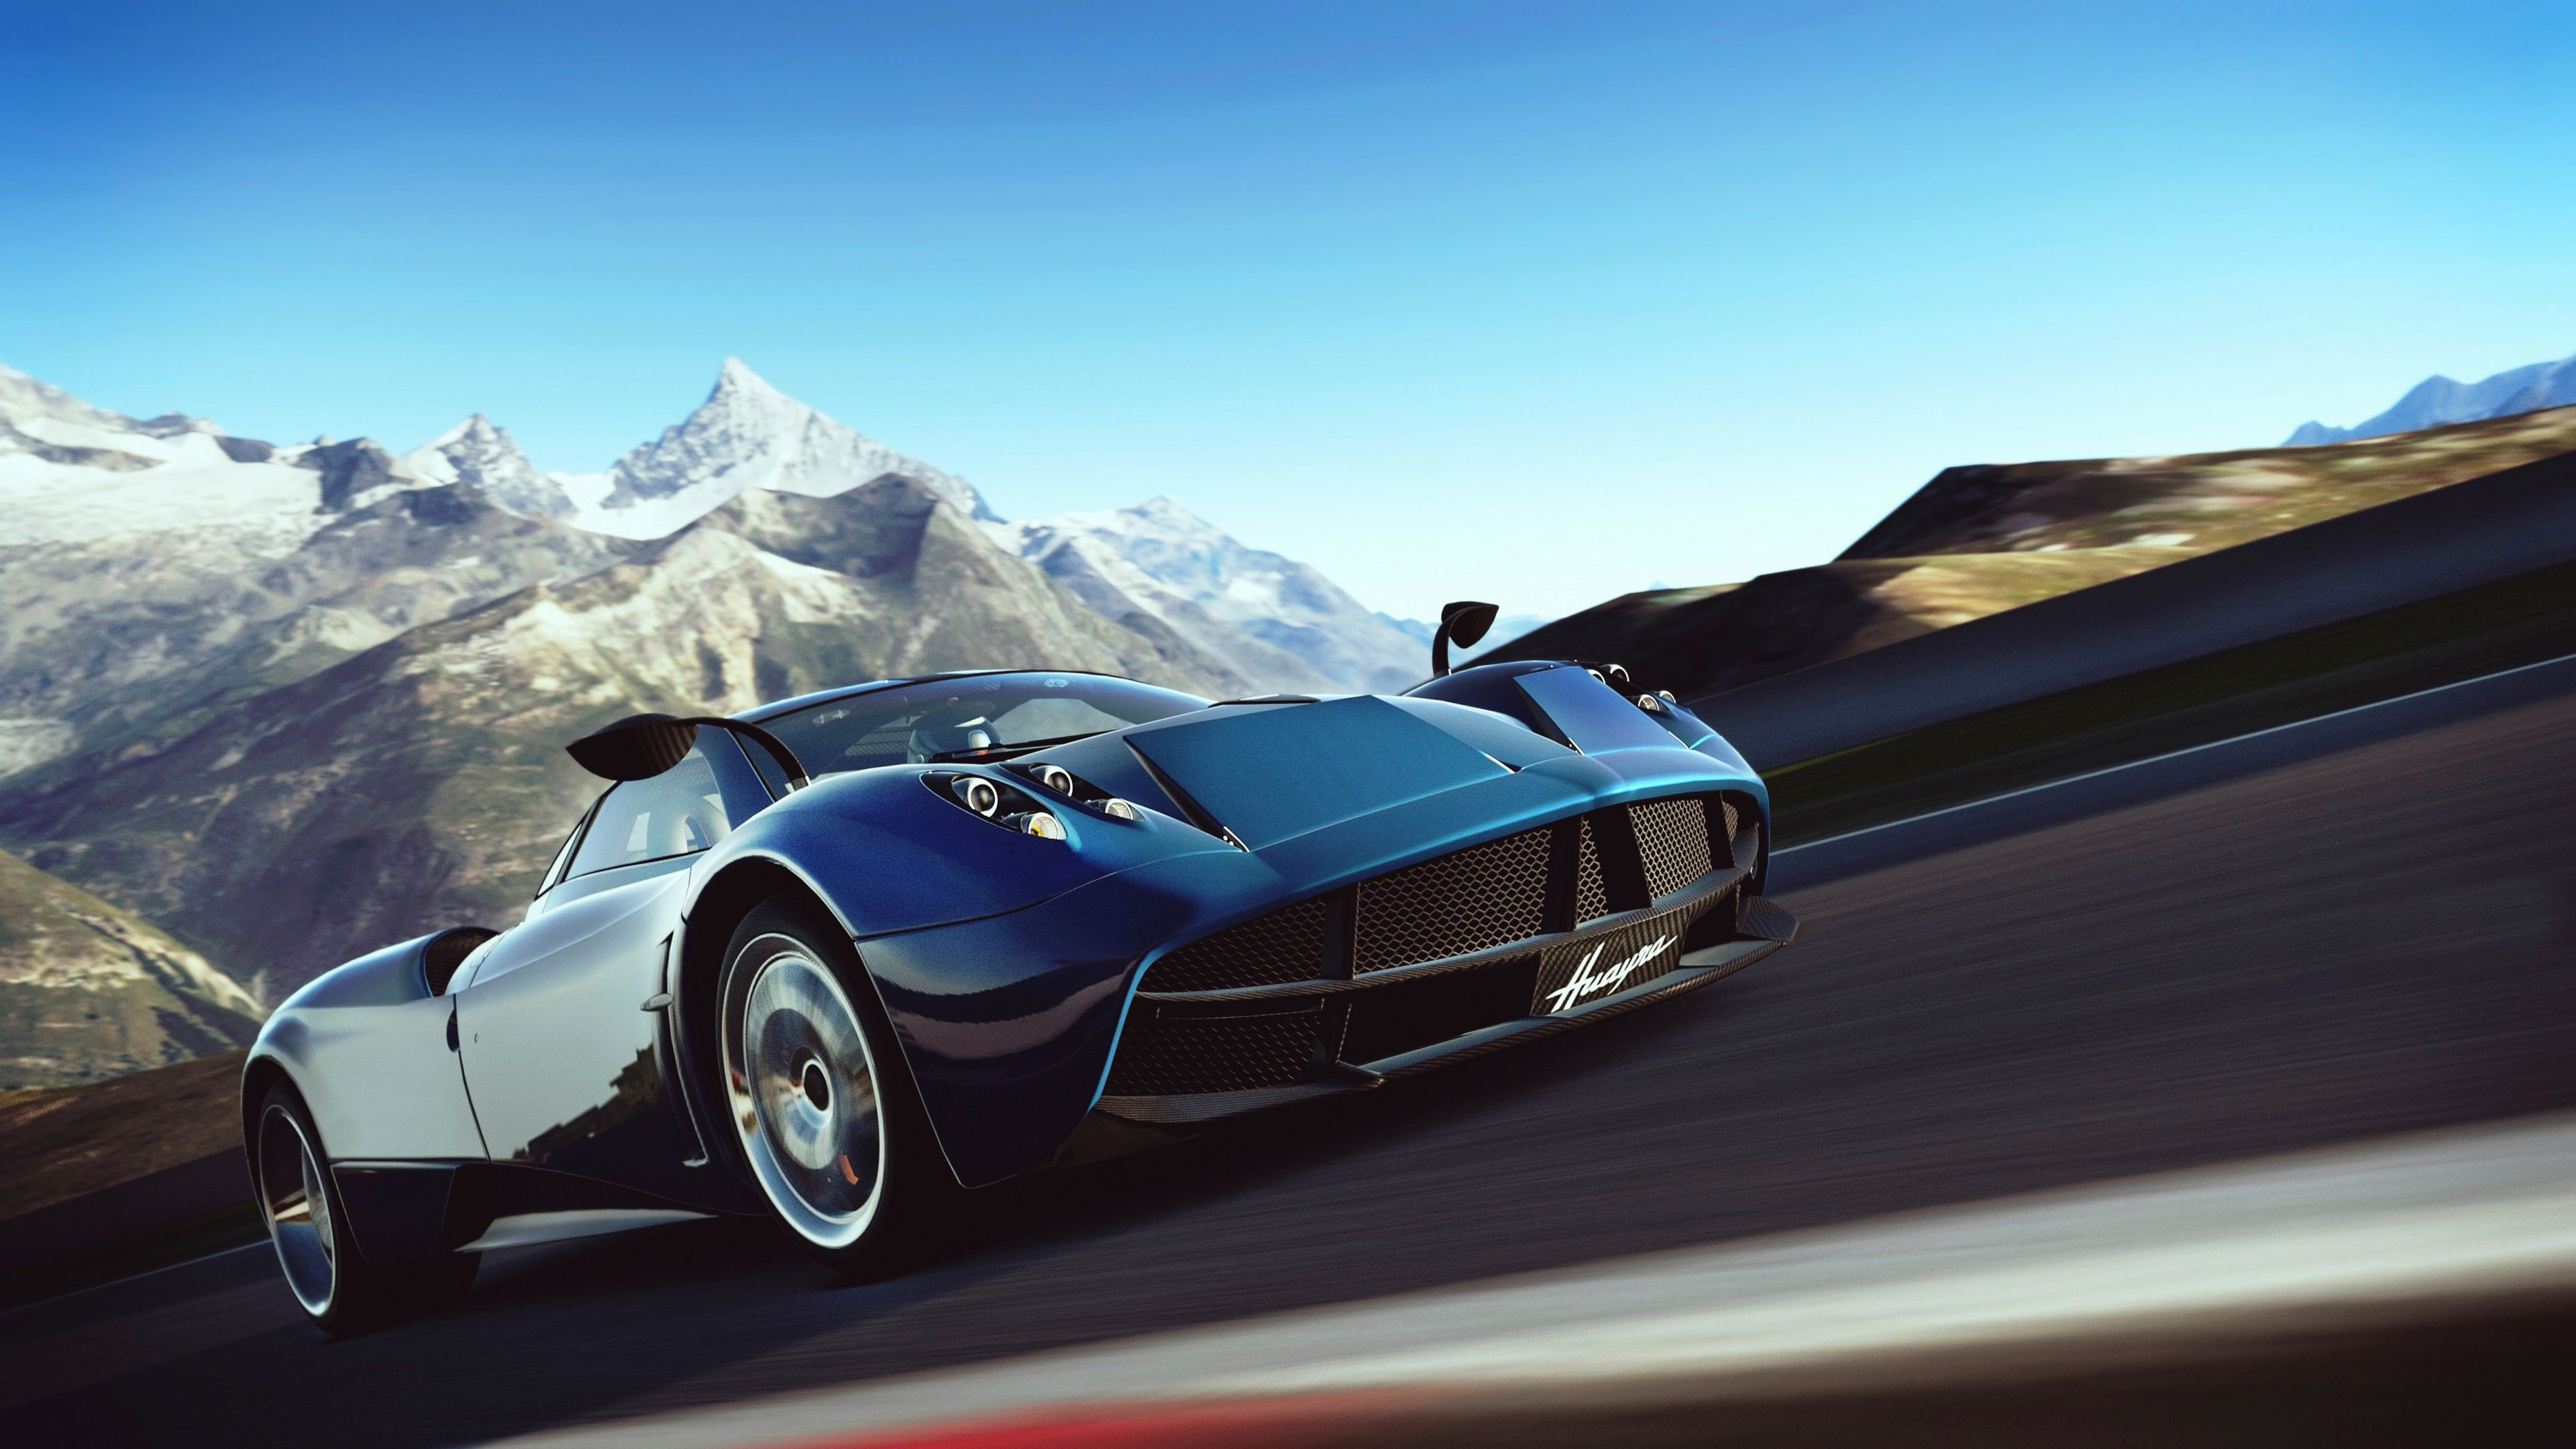 Pagani 4k Wallpapers Top Free Pagani 4k Backgrounds Wallpaperaccess